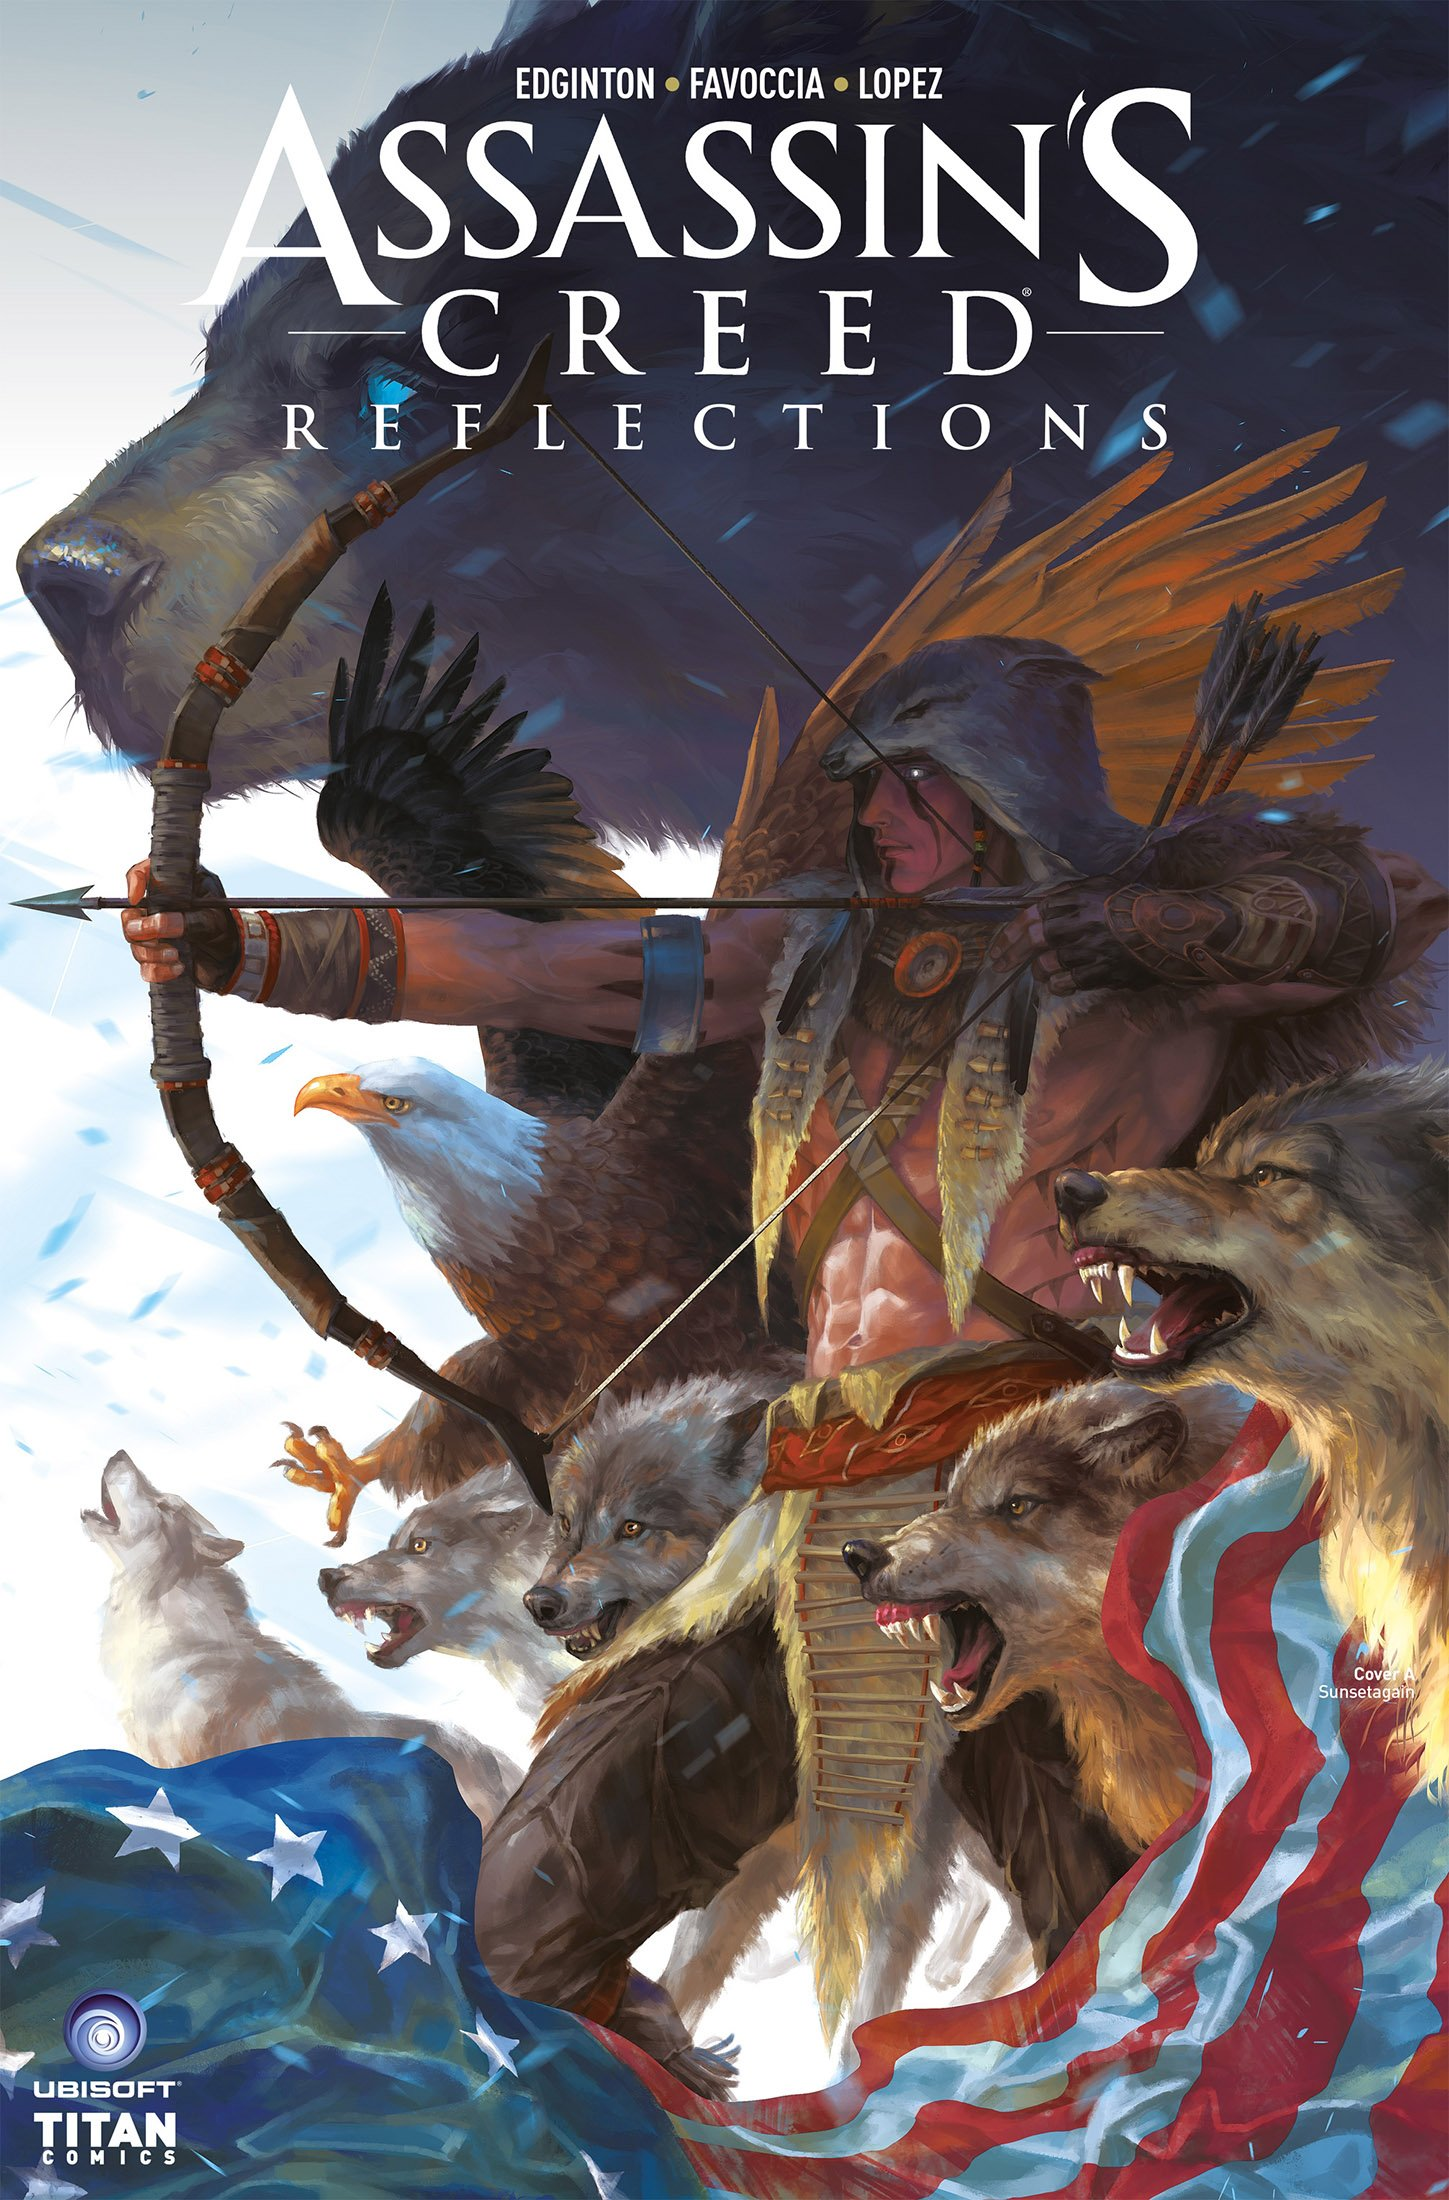 Assassin's Creed - Reflections 04 (August 2017) (cover a)